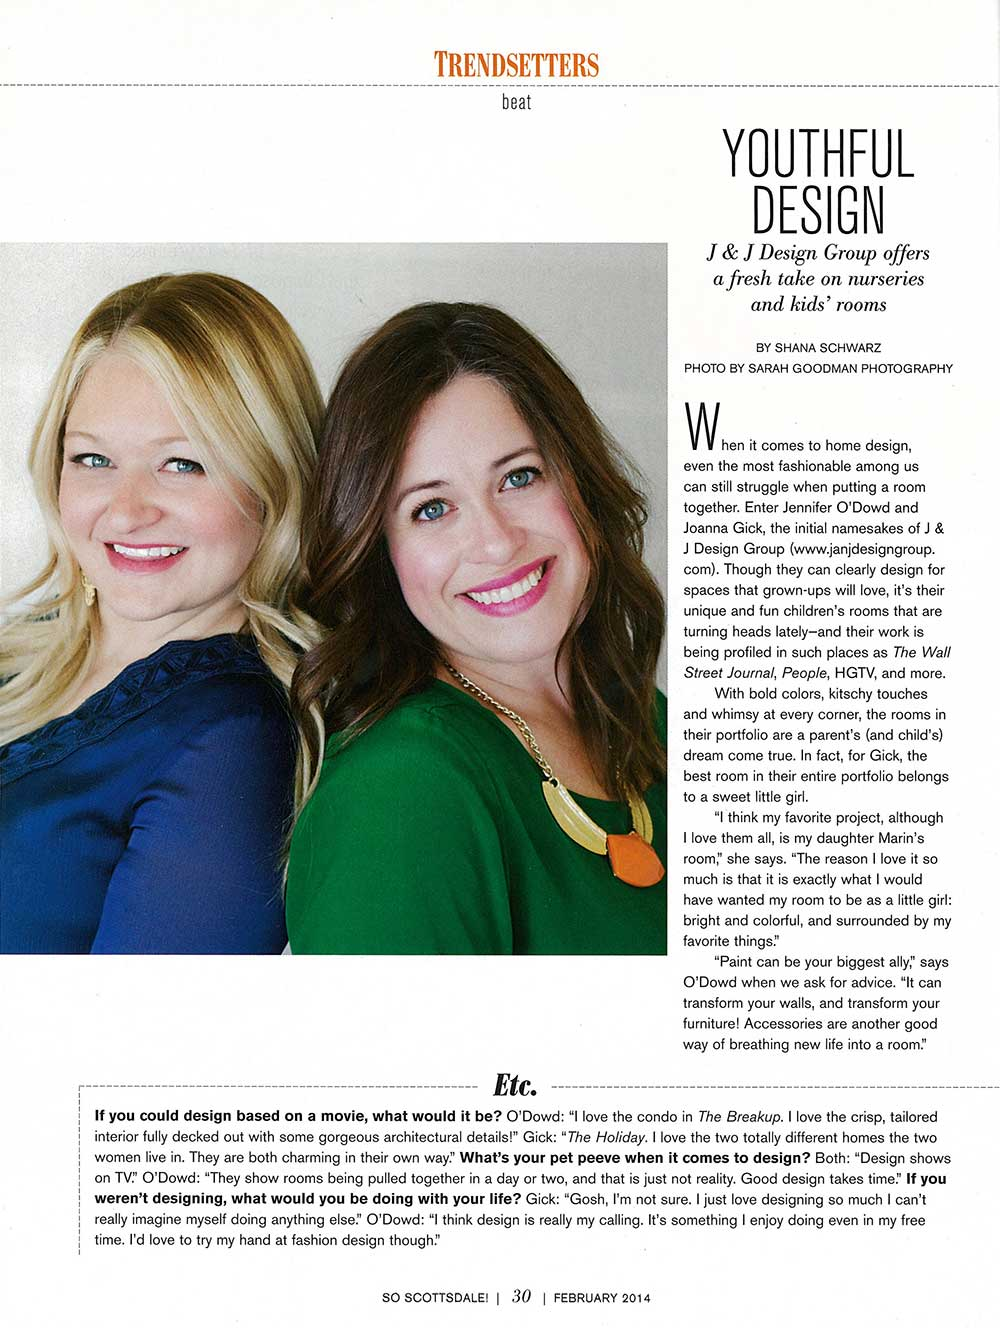 J and J Design Group - So Scottsdale Press